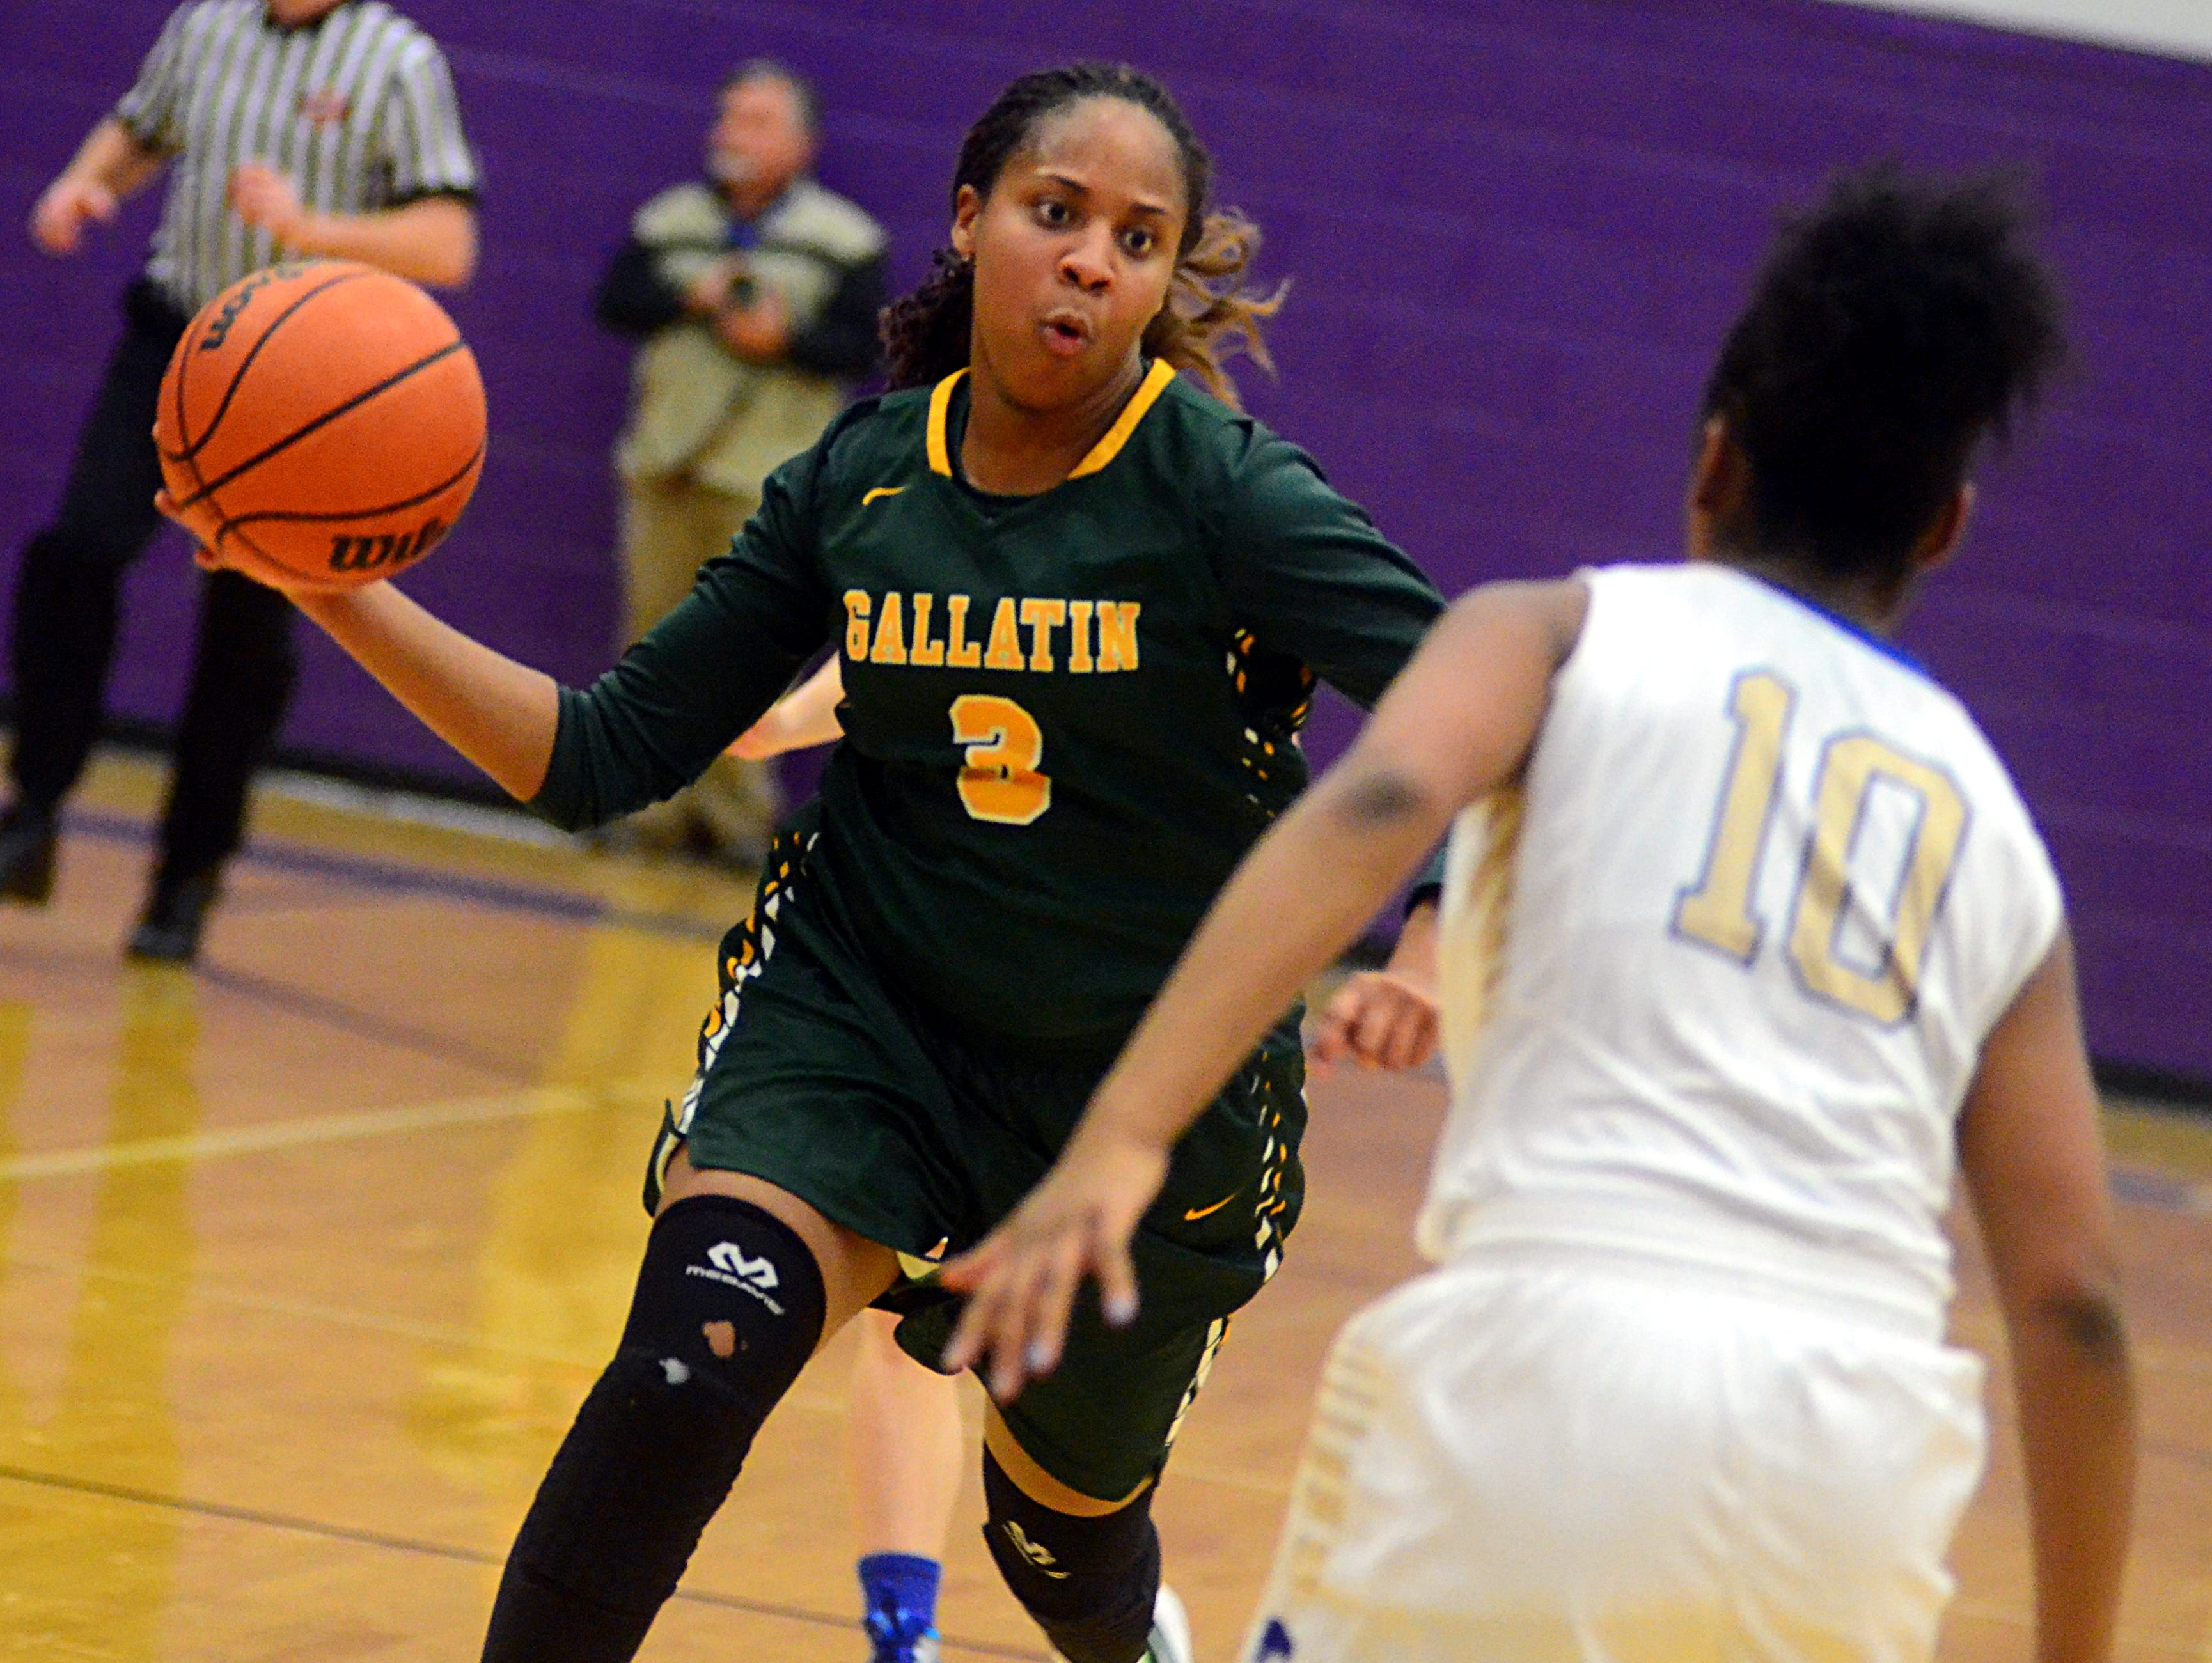 Gallatin High senior Rene Hudson throws a one-handed pass as Wilson Central sophomore Kenadhi Killebrew looks on during first-quarter action. Hudson scored 10 points.